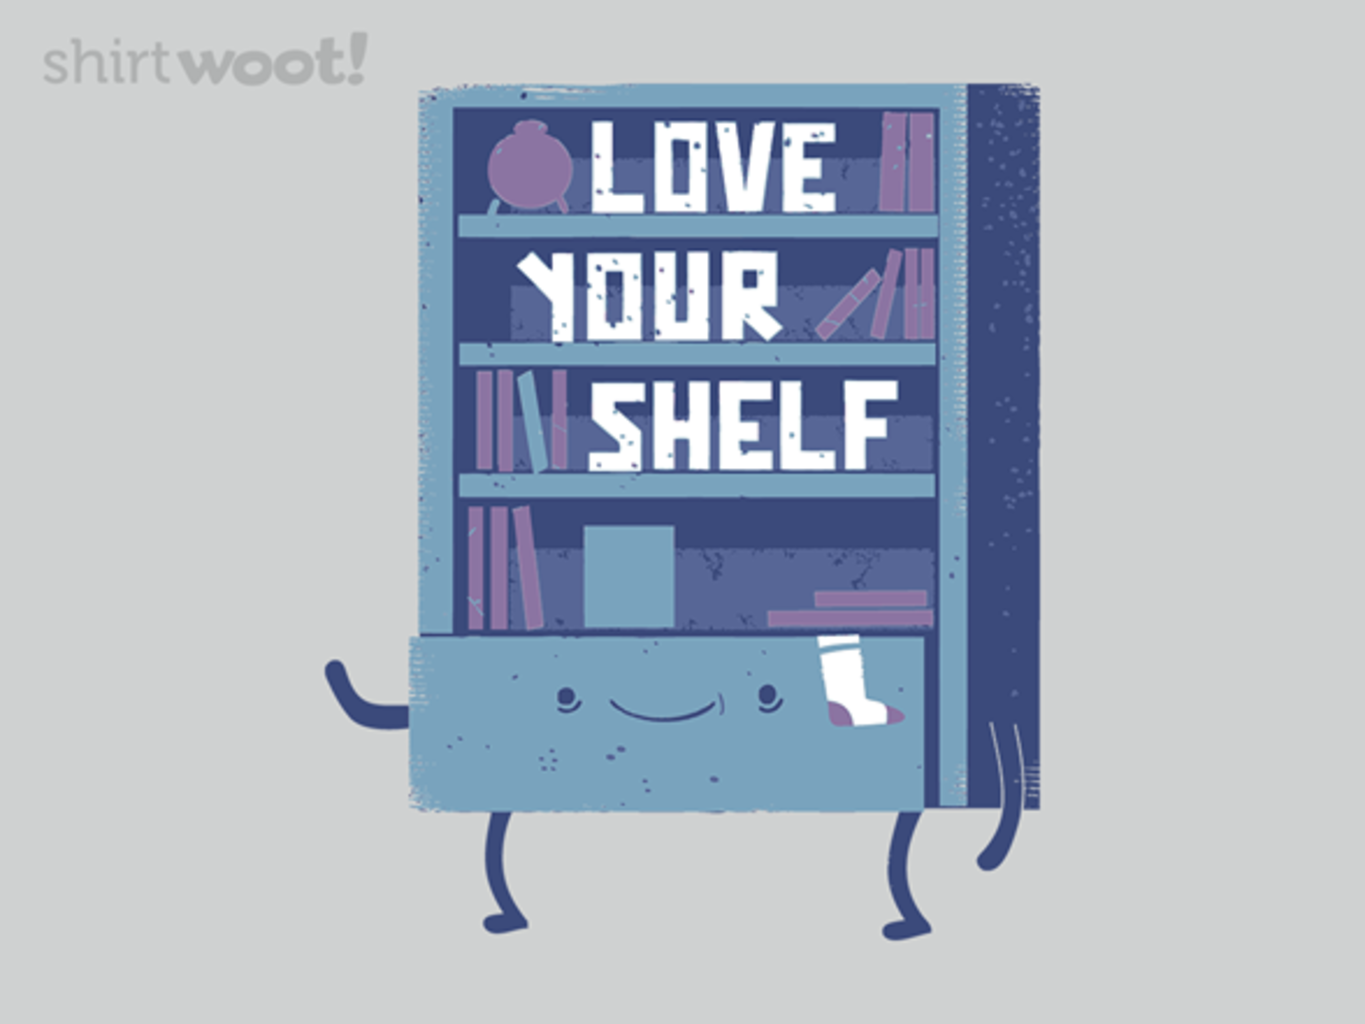 Woot!: Love Your Shelf